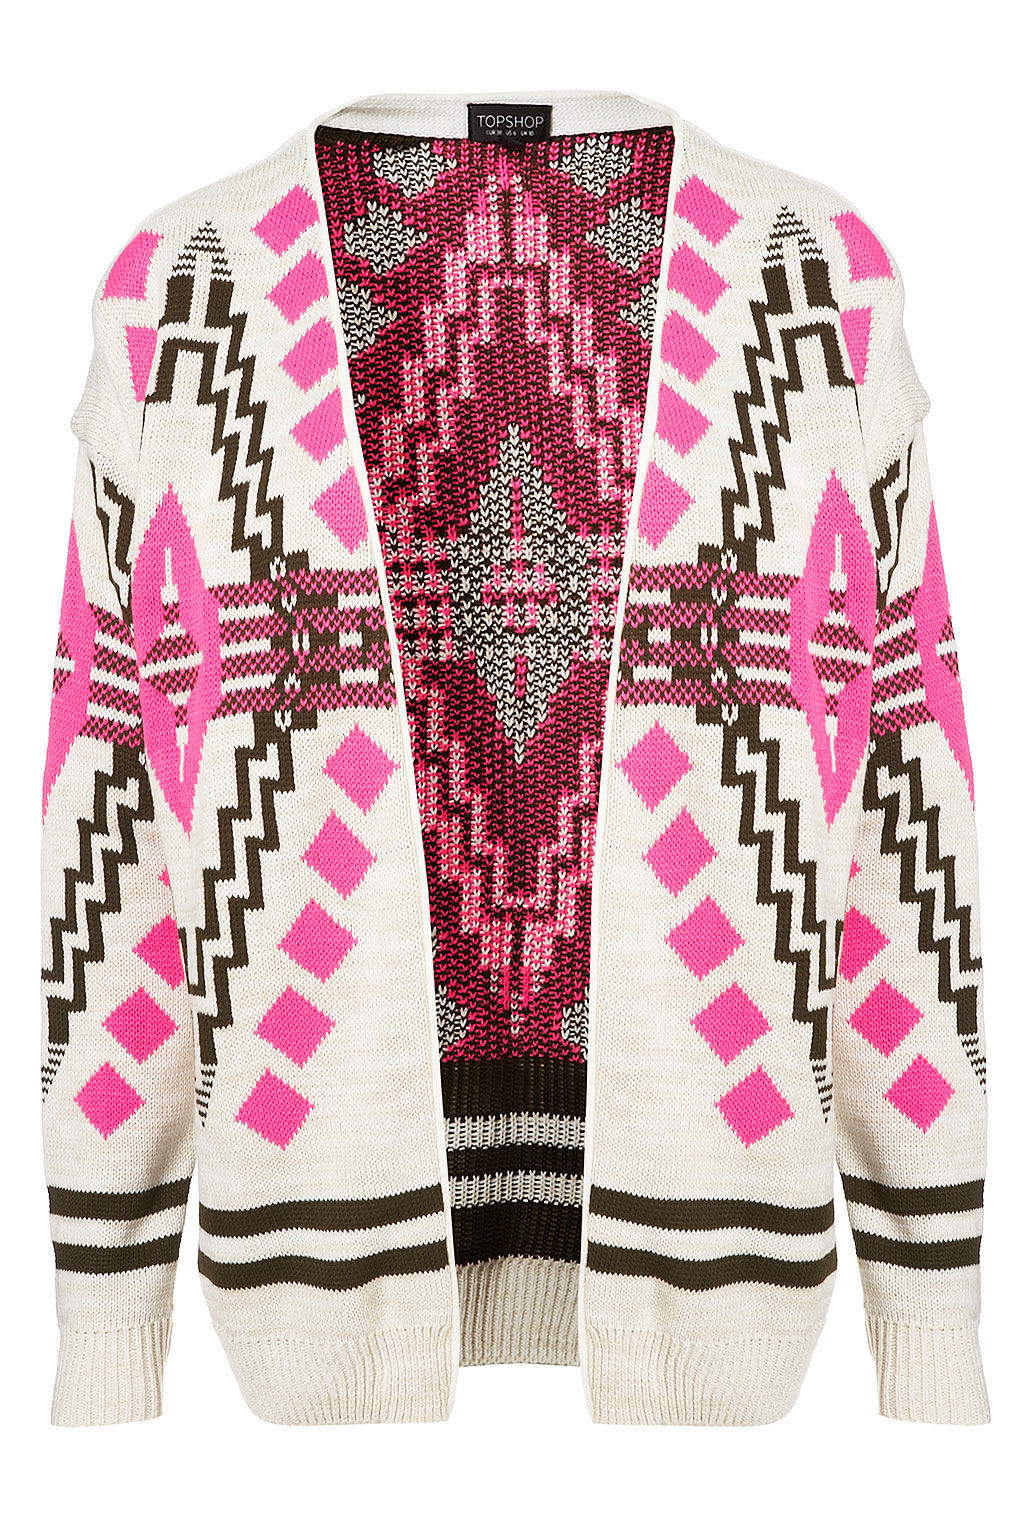 Topshop Knitted Aztec Festival Cardi in Pink Lyst